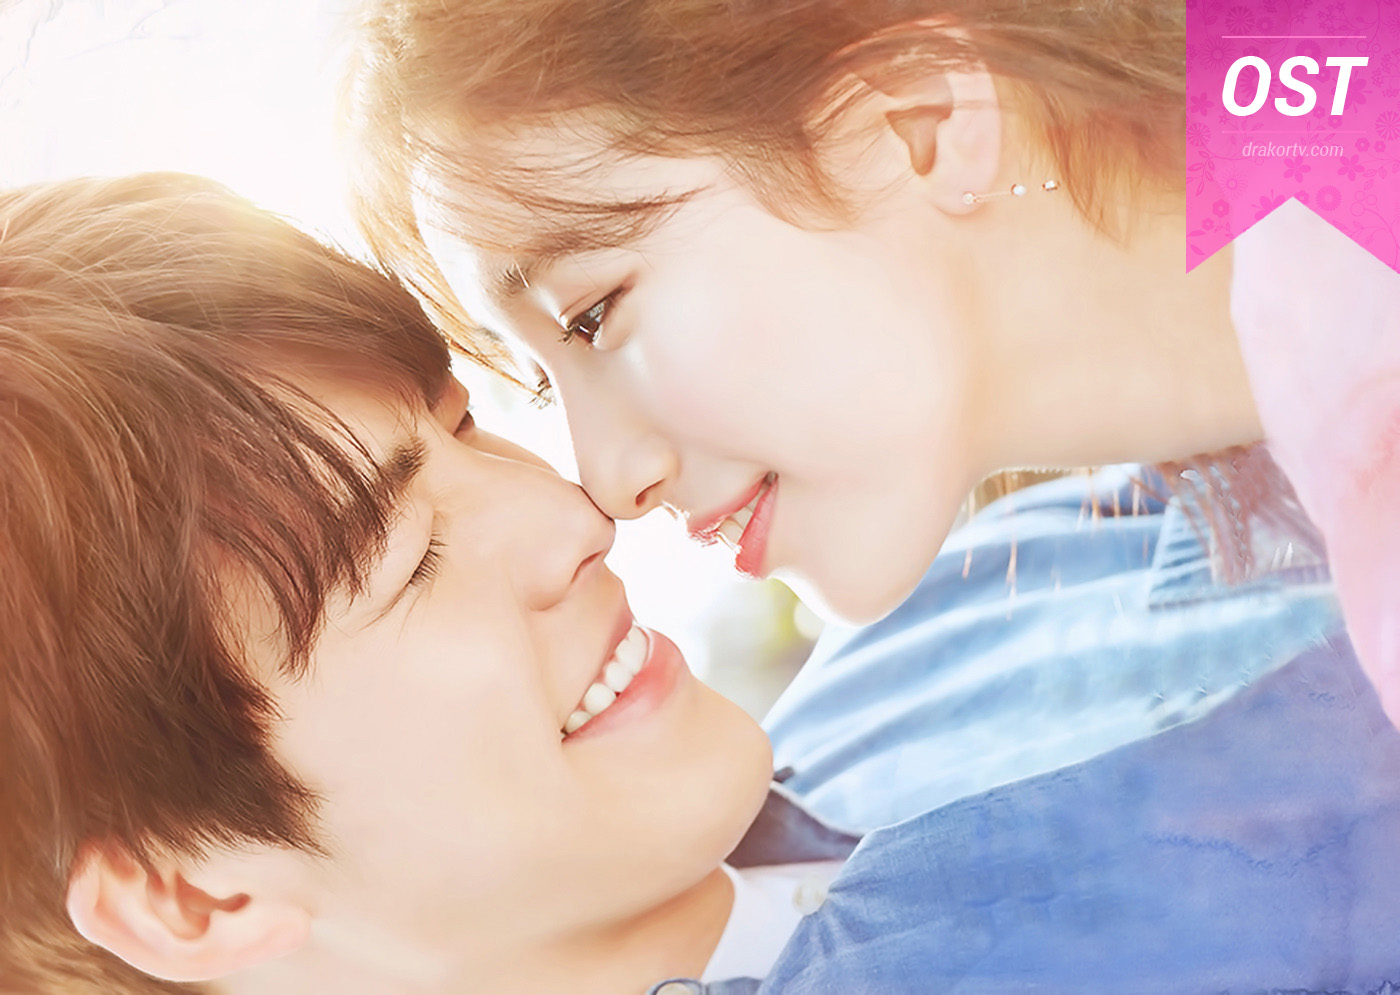 Download OST Uncontrollably Fond (2016)Uncontrollably Fond (2016)